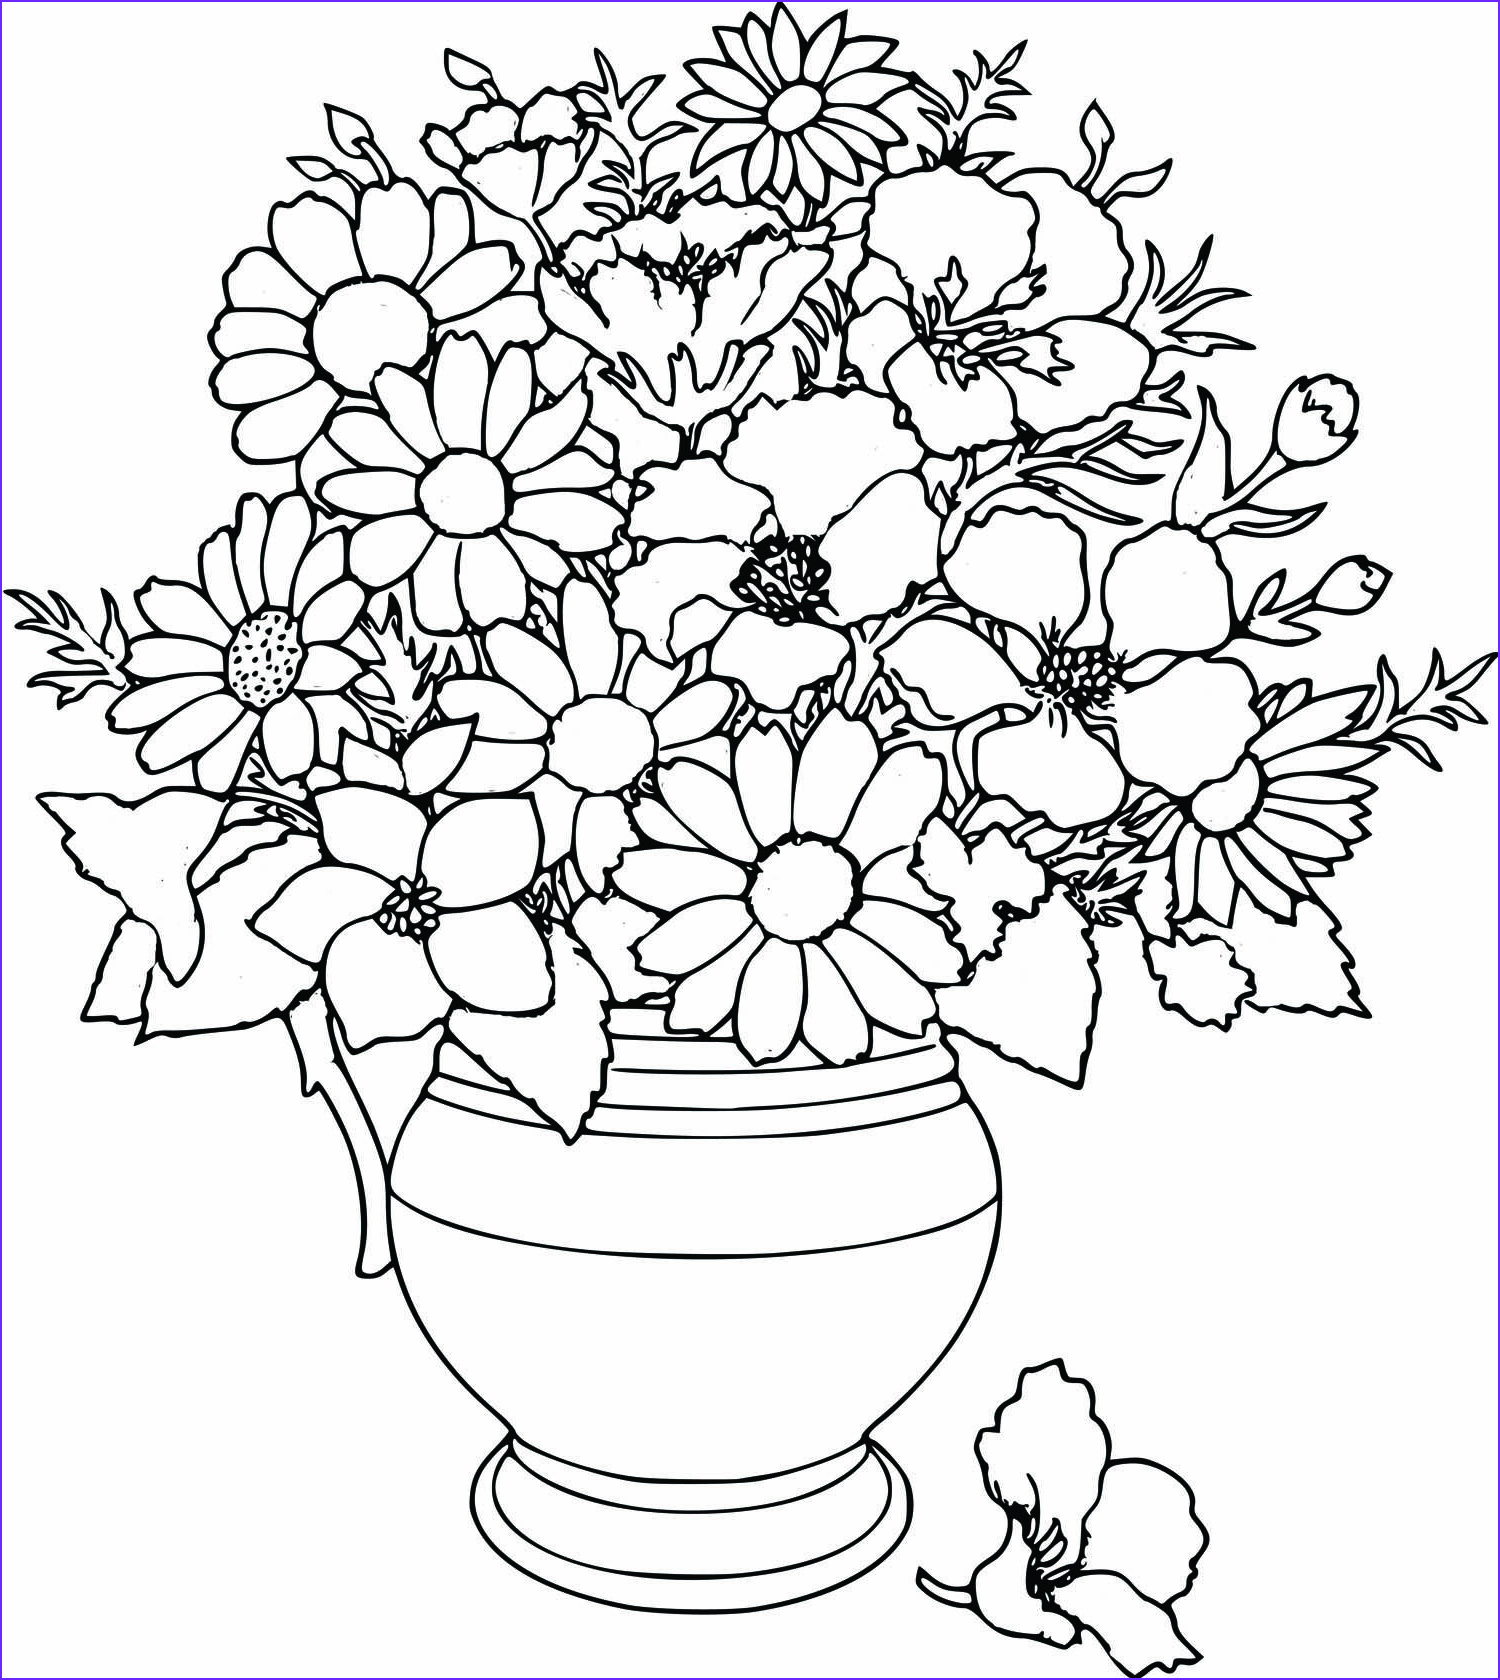 Flower Coloring Pages Awesome Photos Free Beautifull Flower Coloring Pages